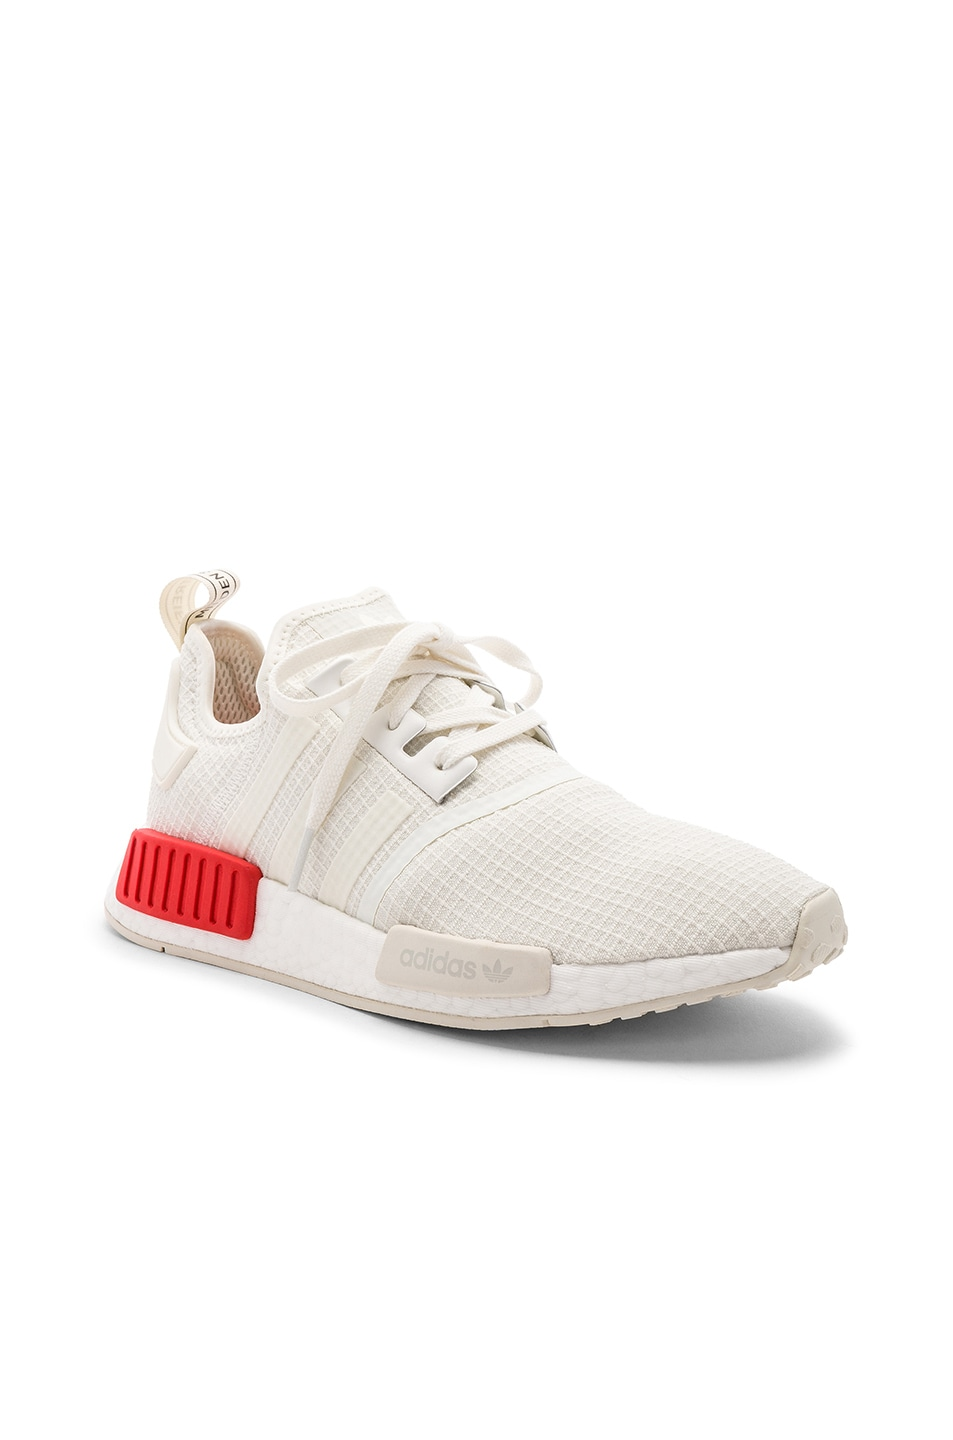 Image 2 of adidas Originals NMD R1 in Off White & Off White & Lush Red